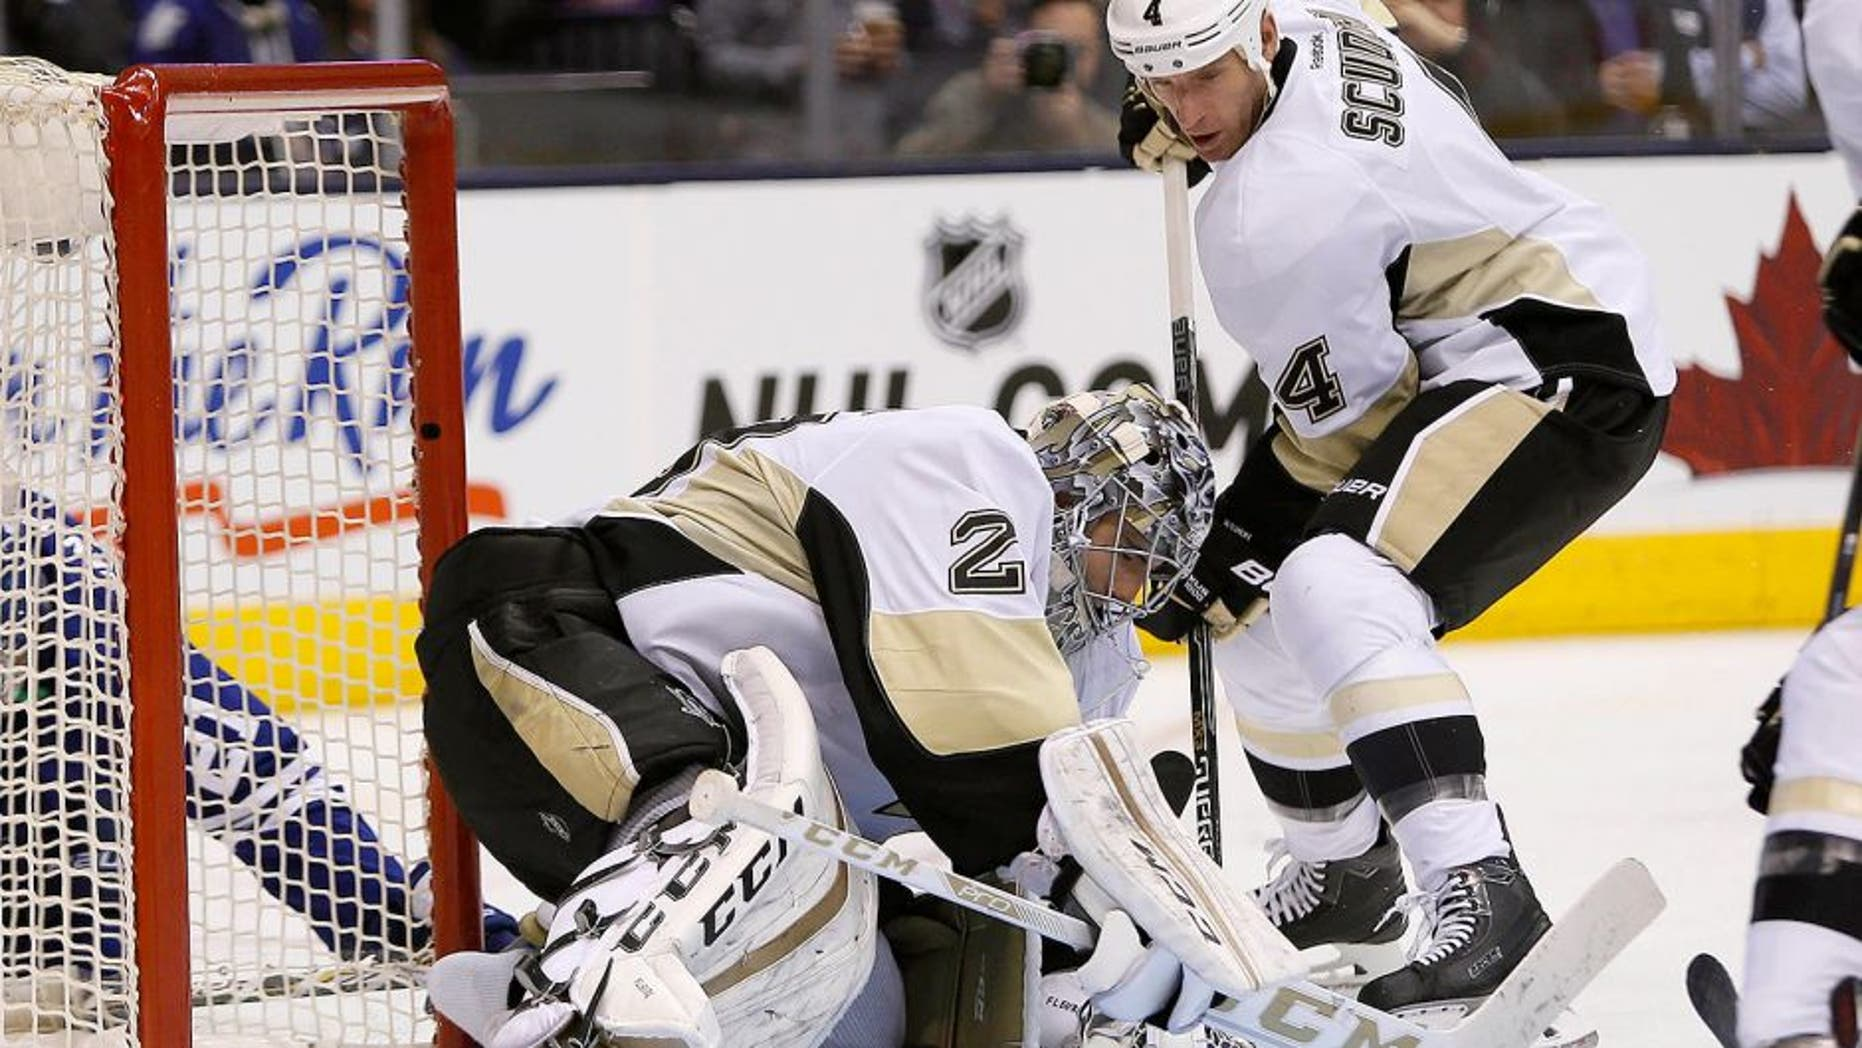 Oct 31, 2015; Toronto, Ontario, CAN; Pittsburgh Penguins defenseman Rob Scuderi (4) helps Pittsburgh Penguins goaltender Marc-Andre Fleury (29) cover a loose puck against the Toronto Maple Leafs during the second period at the Air Canada Centre. Mandatory Credit: John E. Sokolowski-USA TODAY Sports